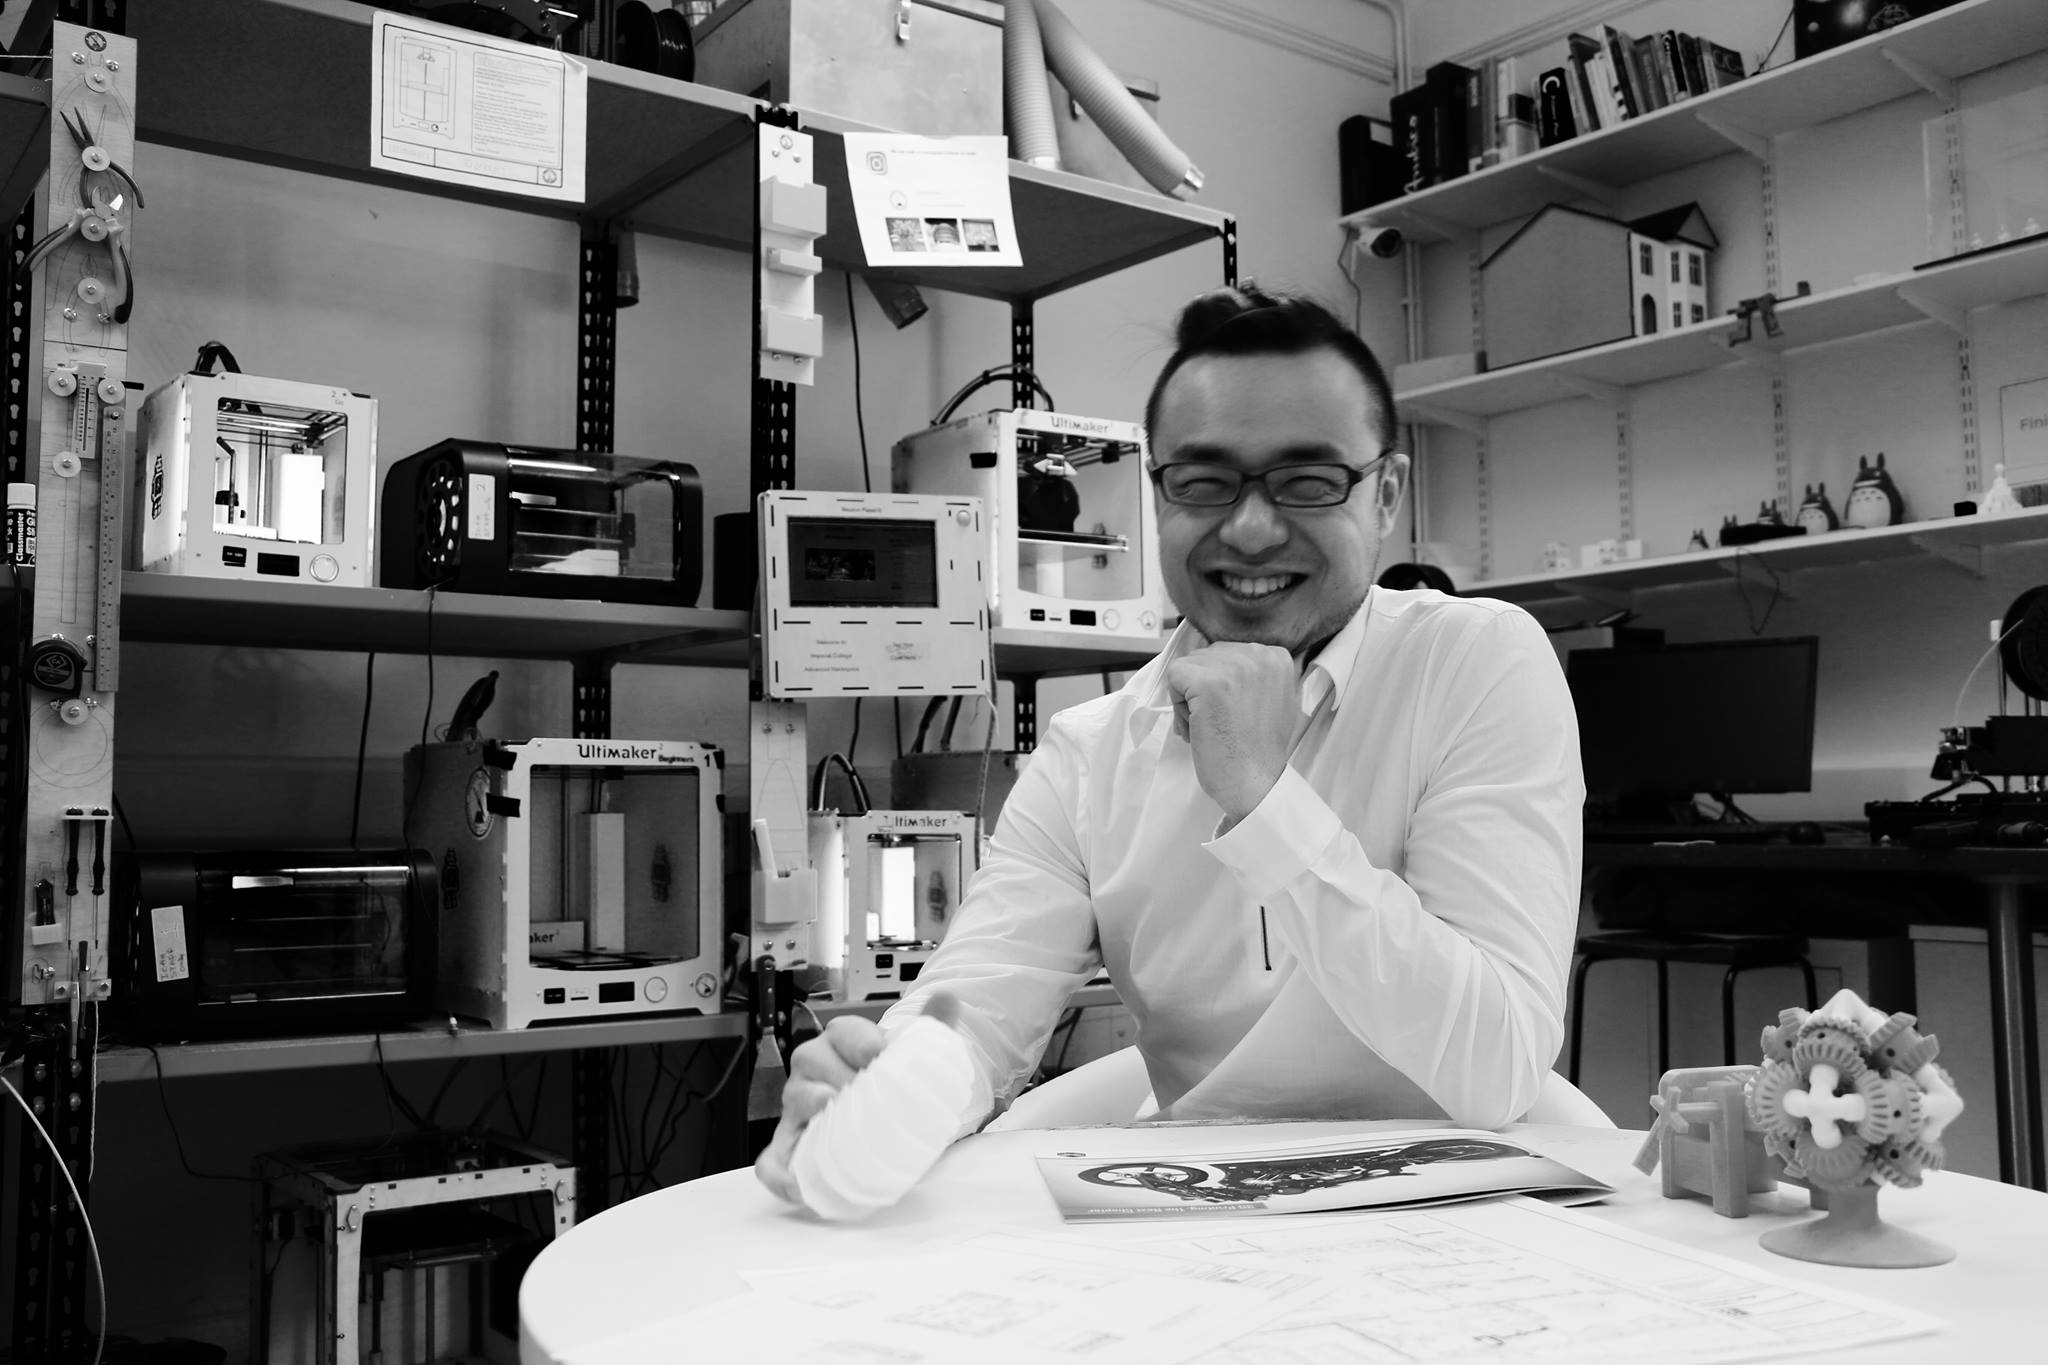 3D printing meets augmented reality: an interview with Eric Gu, co-founder of InfiniFab